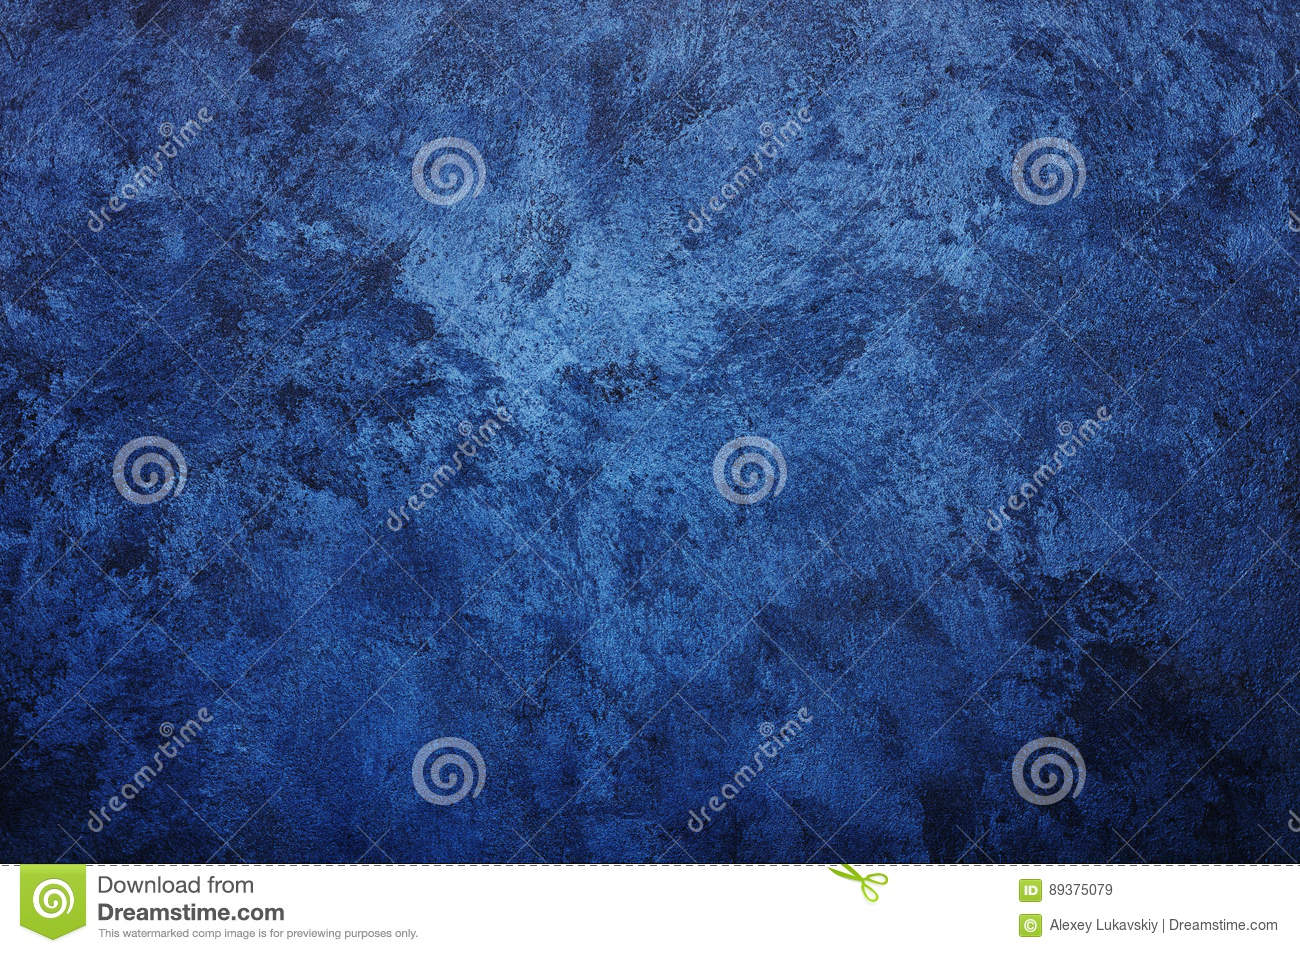 Serenity Blue Paint Venetian Decorative Plaster Royalty Free Stock Photo